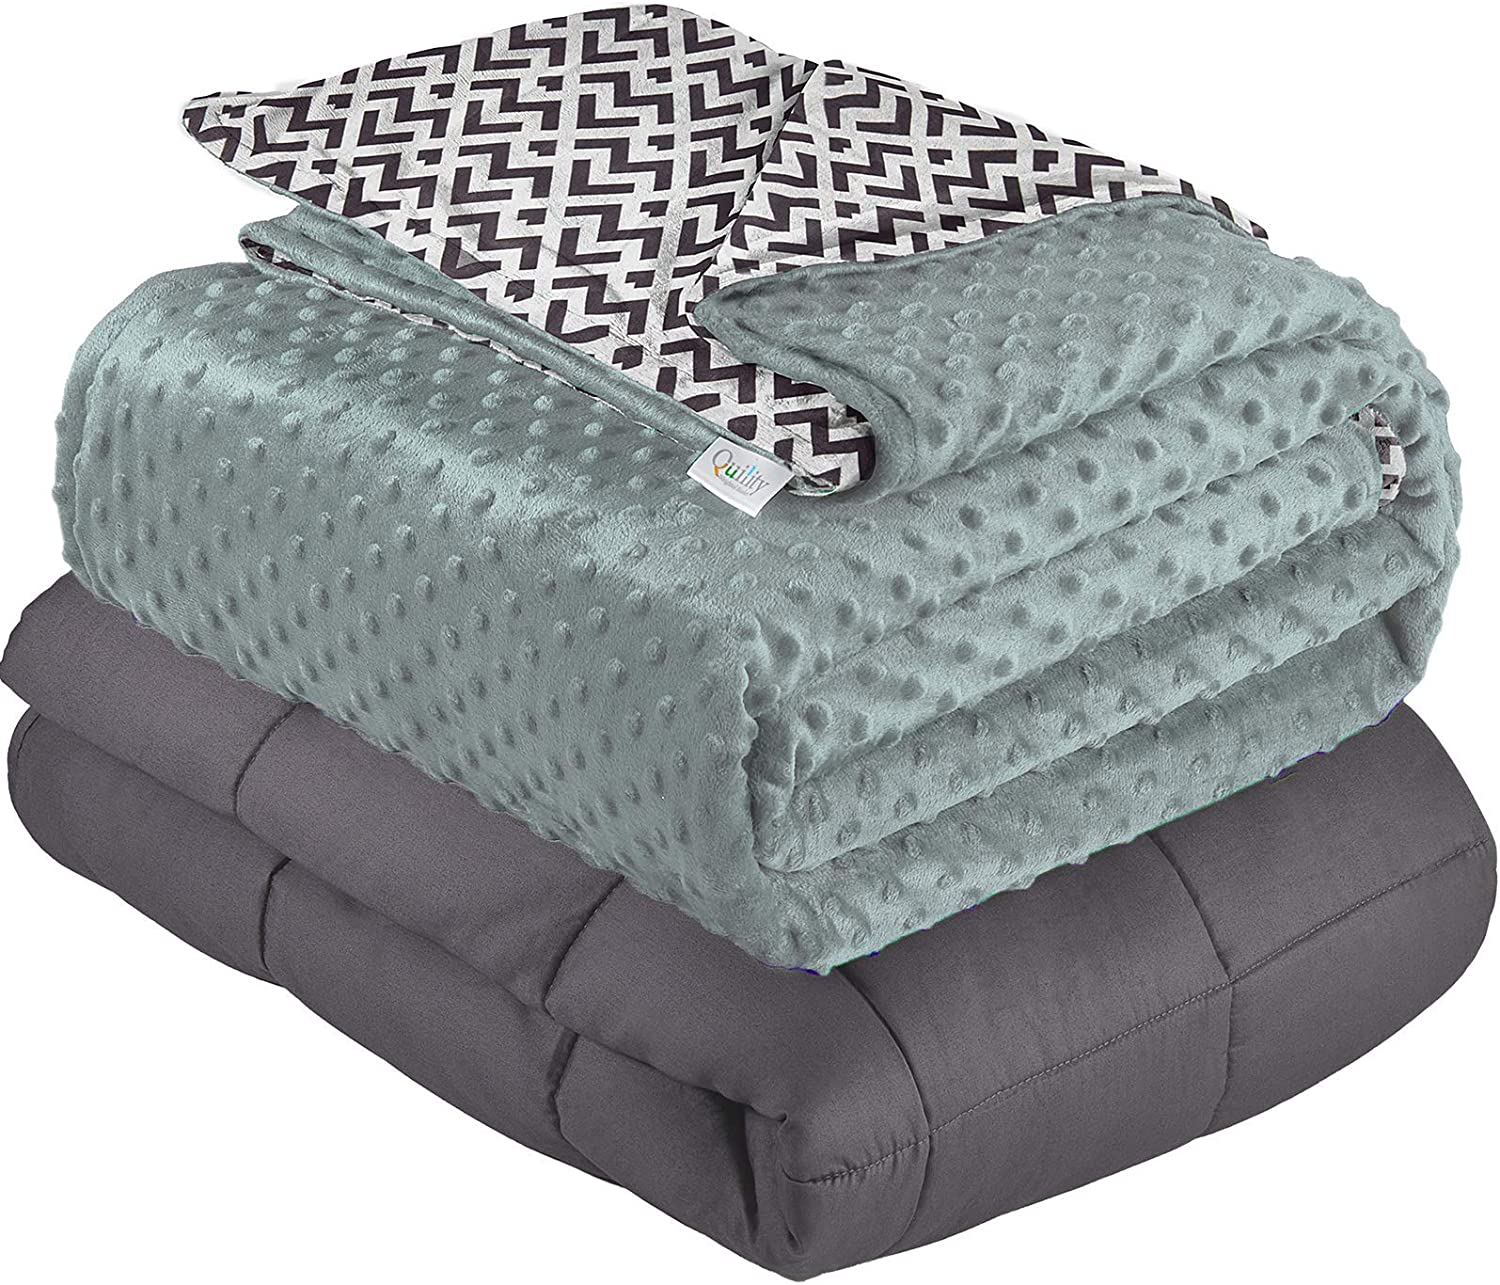 Quility Premium Cotton 86 by 92 in for Full Size Bed 15 lbs Adult Weighted Blanket Grey with Removable Duvet Cover Chevron Print